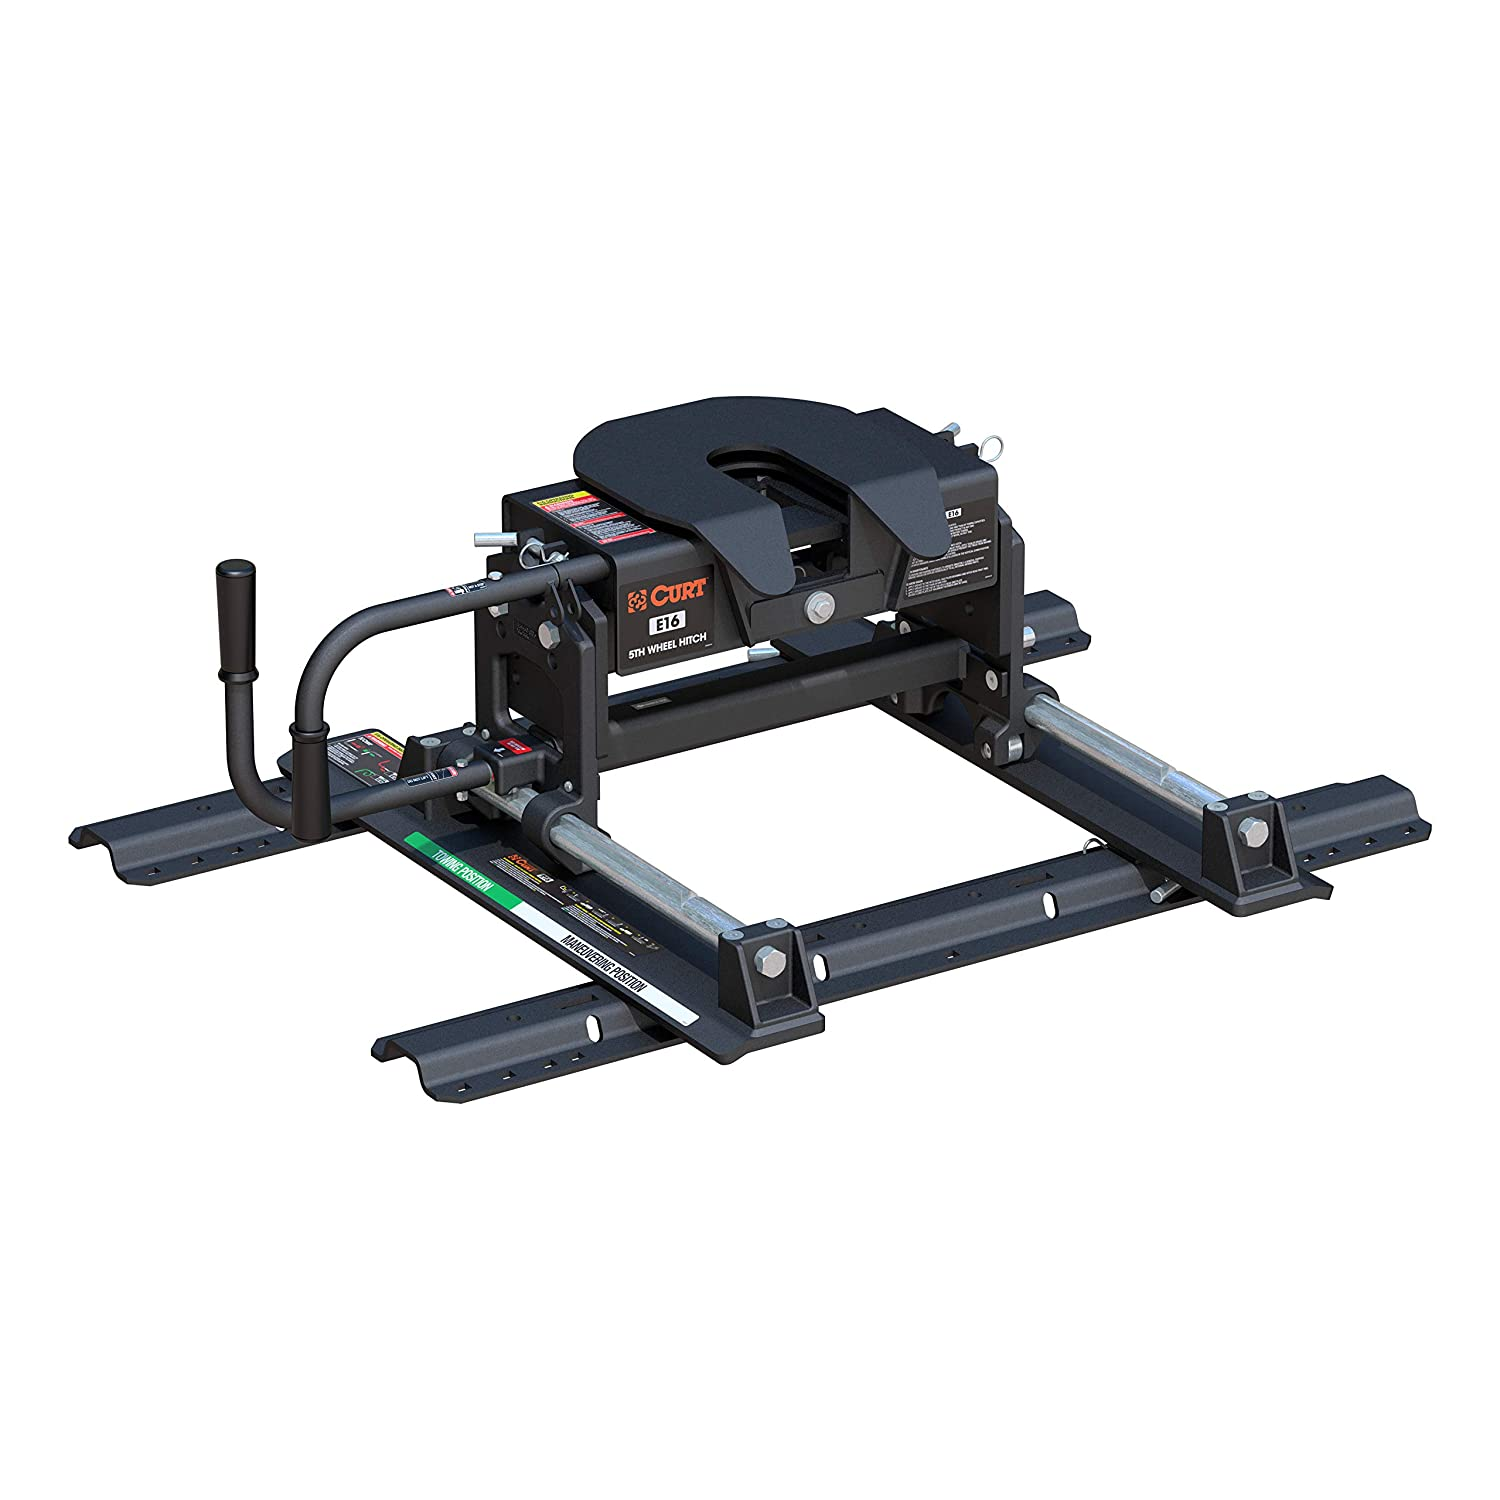 CURT 16616 E5 Fifth Wheel Head R5 Roller and Mounting Rails